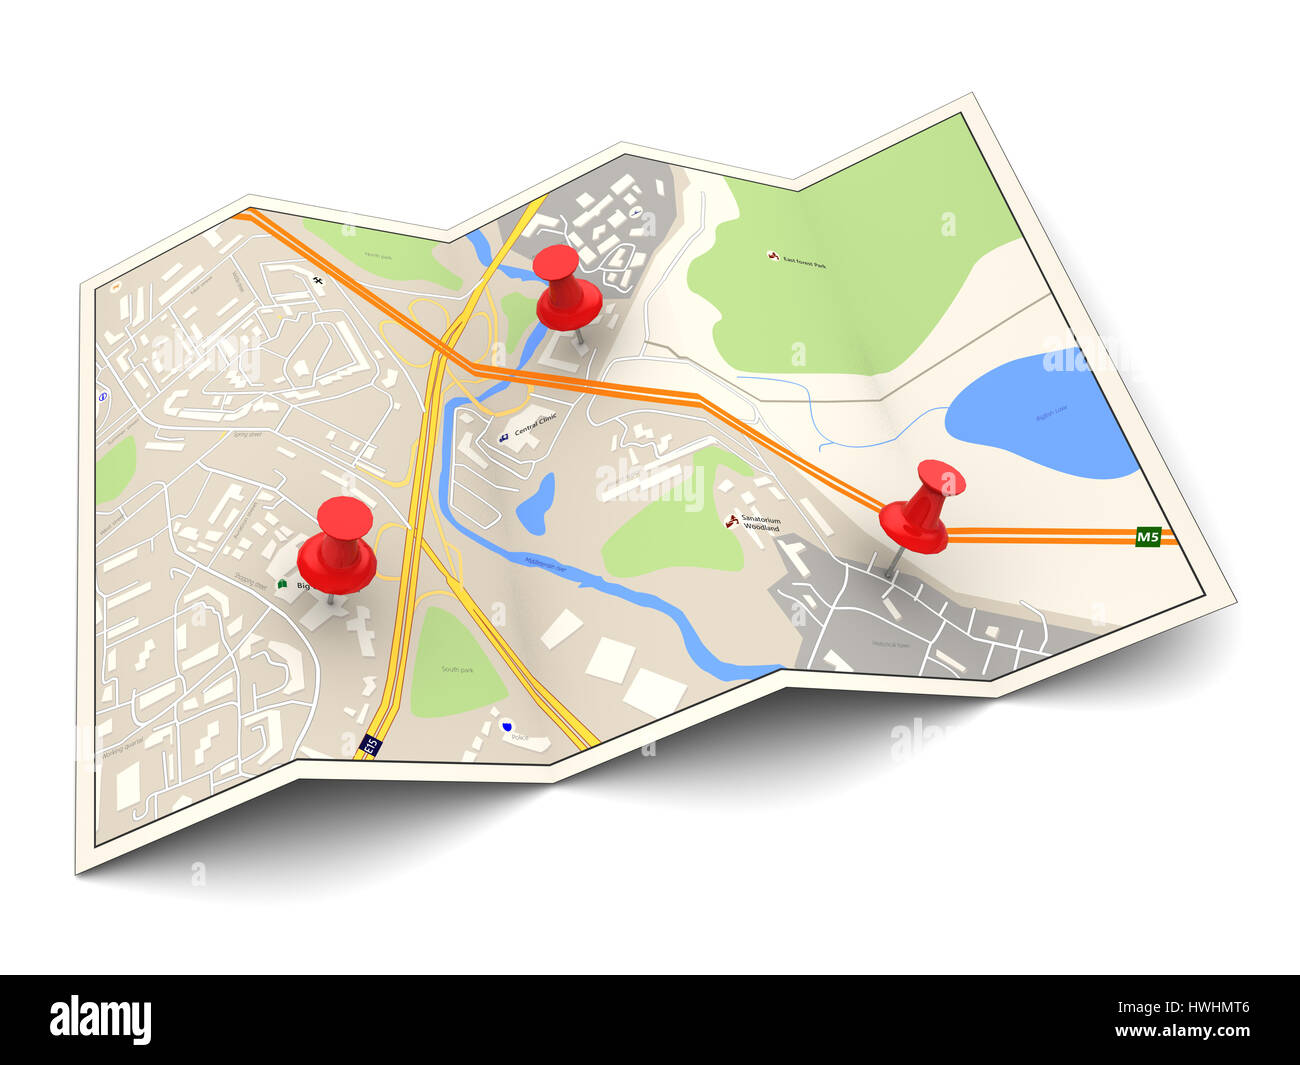 3d illustration of city map with three red pins - Stock Image